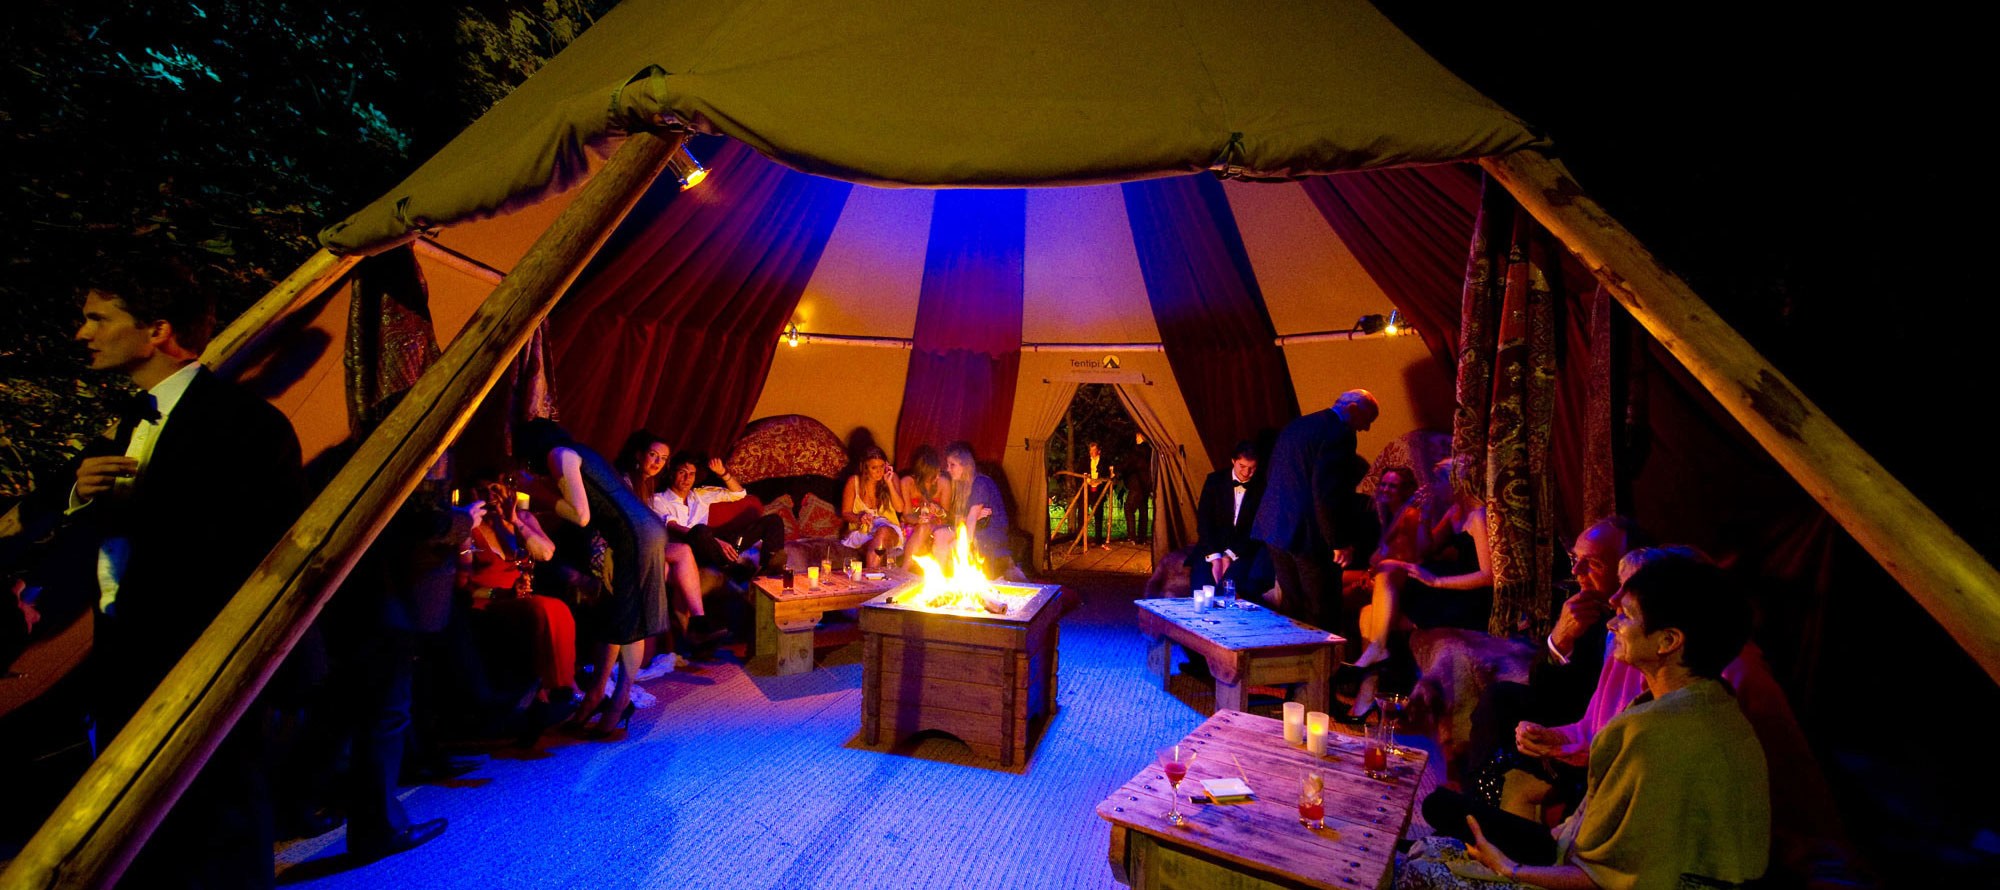 Tentipi interior and fire - giant hat kata tents for sale